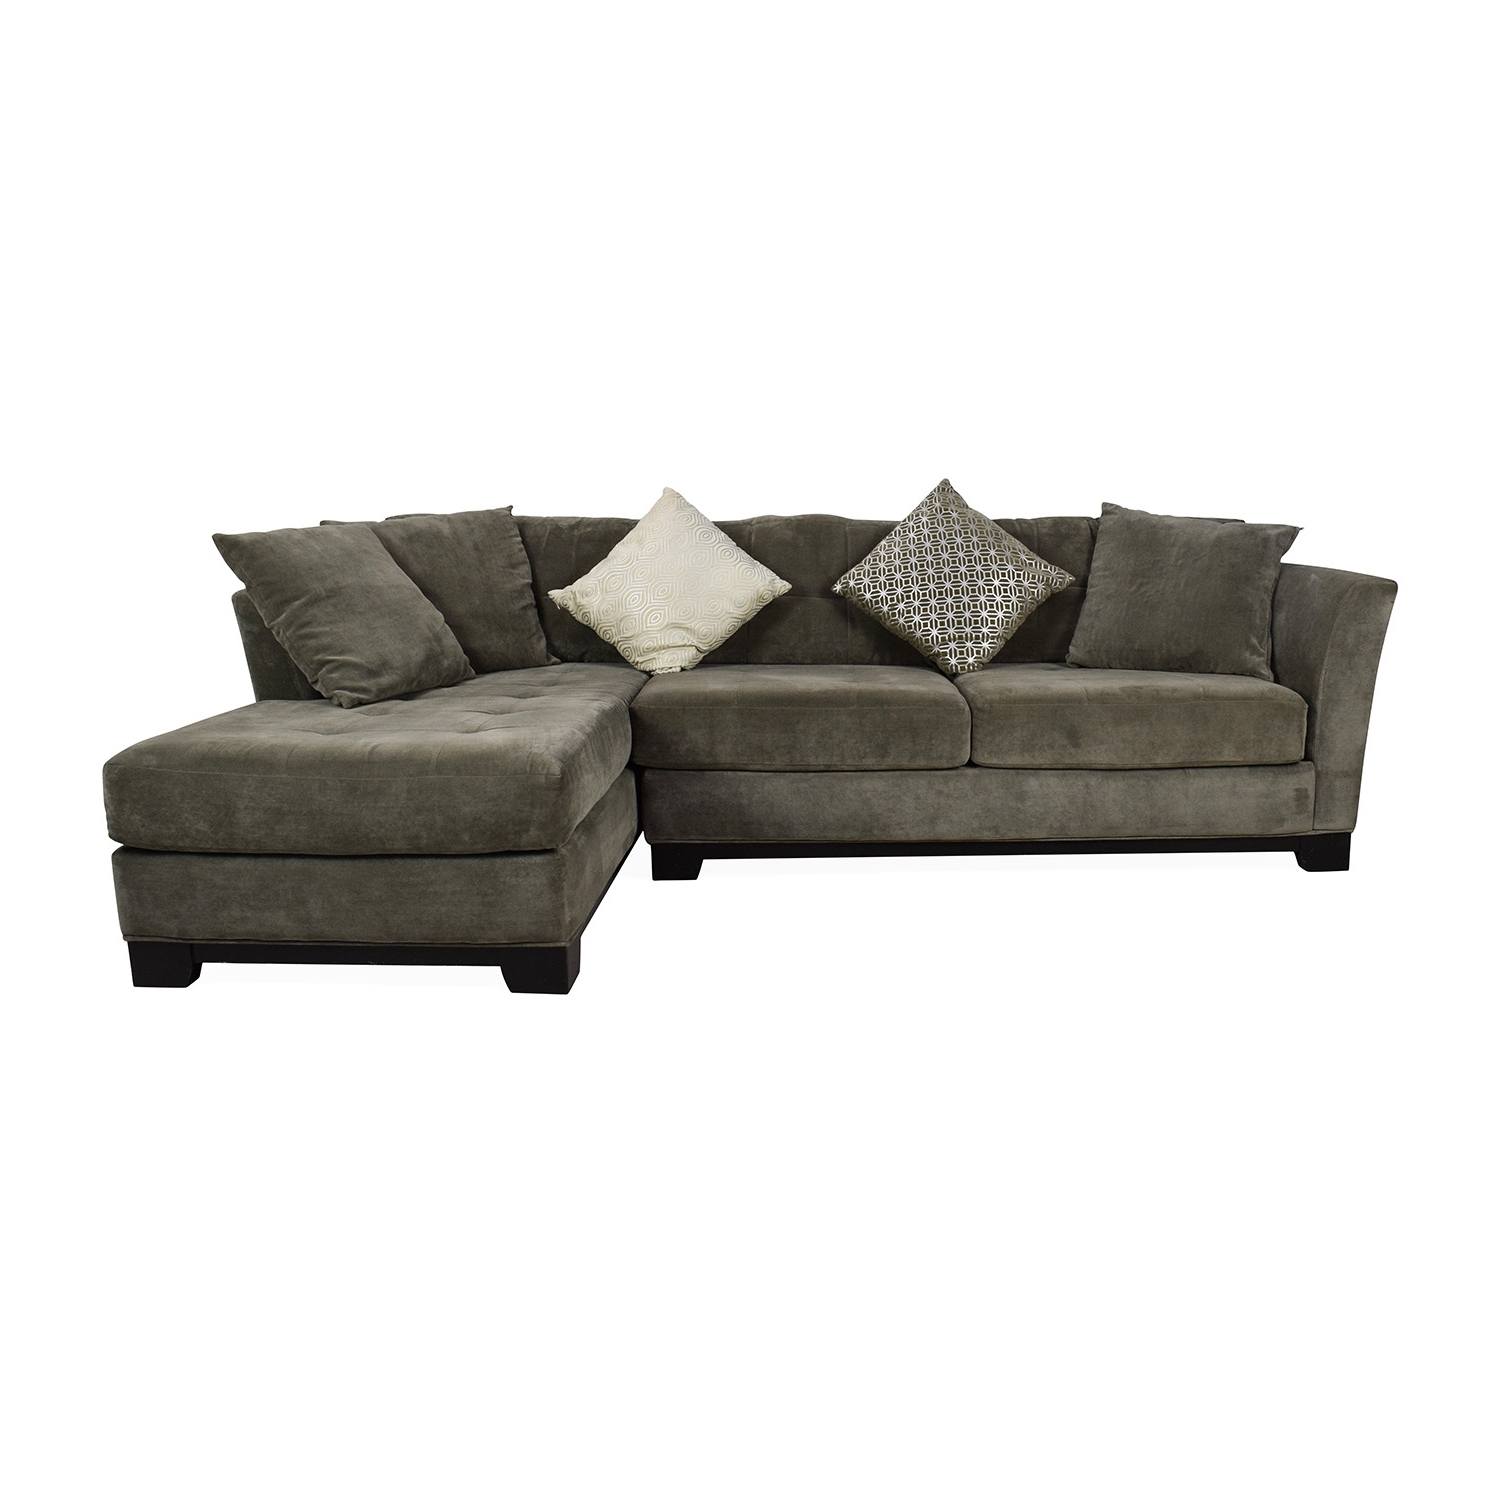 [%50% Off – Macy's Macy's Gray Sectional Couch With Chaise / Sofas Inside 2017 Gray Couches With Chaise|Gray Couches With Chaise Throughout Most Current 50% Off – Macy's Macy's Gray Sectional Couch With Chaise / Sofas|Preferred Gray Couches With Chaise Regarding 50% Off – Macy's Macy's Gray Sectional Couch With Chaise / Sofas|Most Current 50% Off – Macy's Macy's Gray Sectional Couch With Chaise / Sofas Intended For Gray Couches With Chaise%] (View 1 of 15)